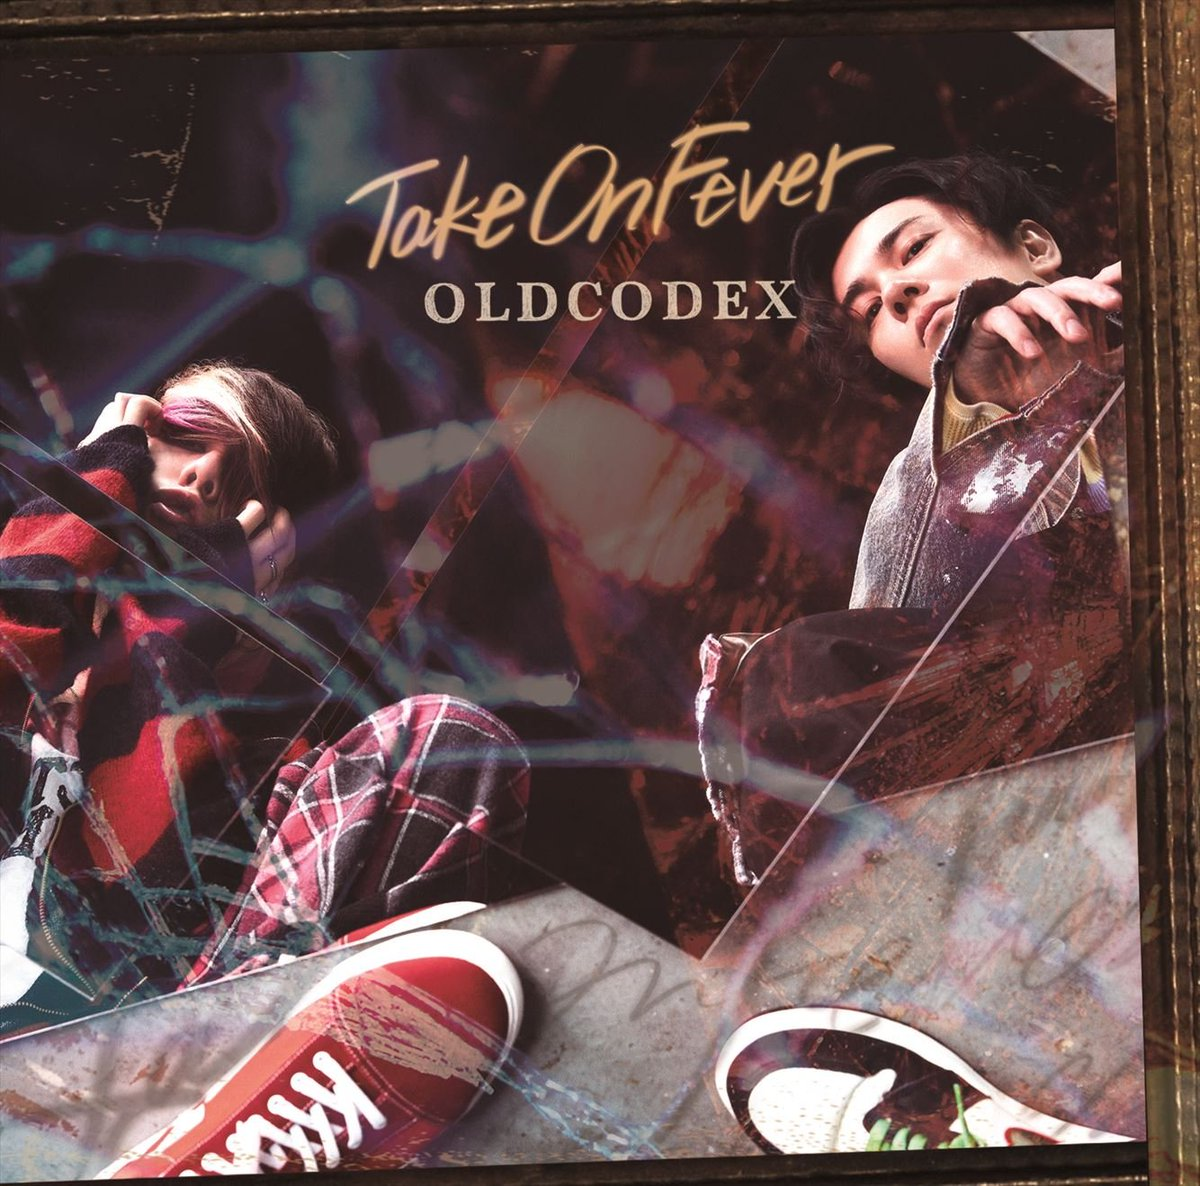 『OLDCODEXpainting of sorrow』収録の『Take On Fever』ジャケット